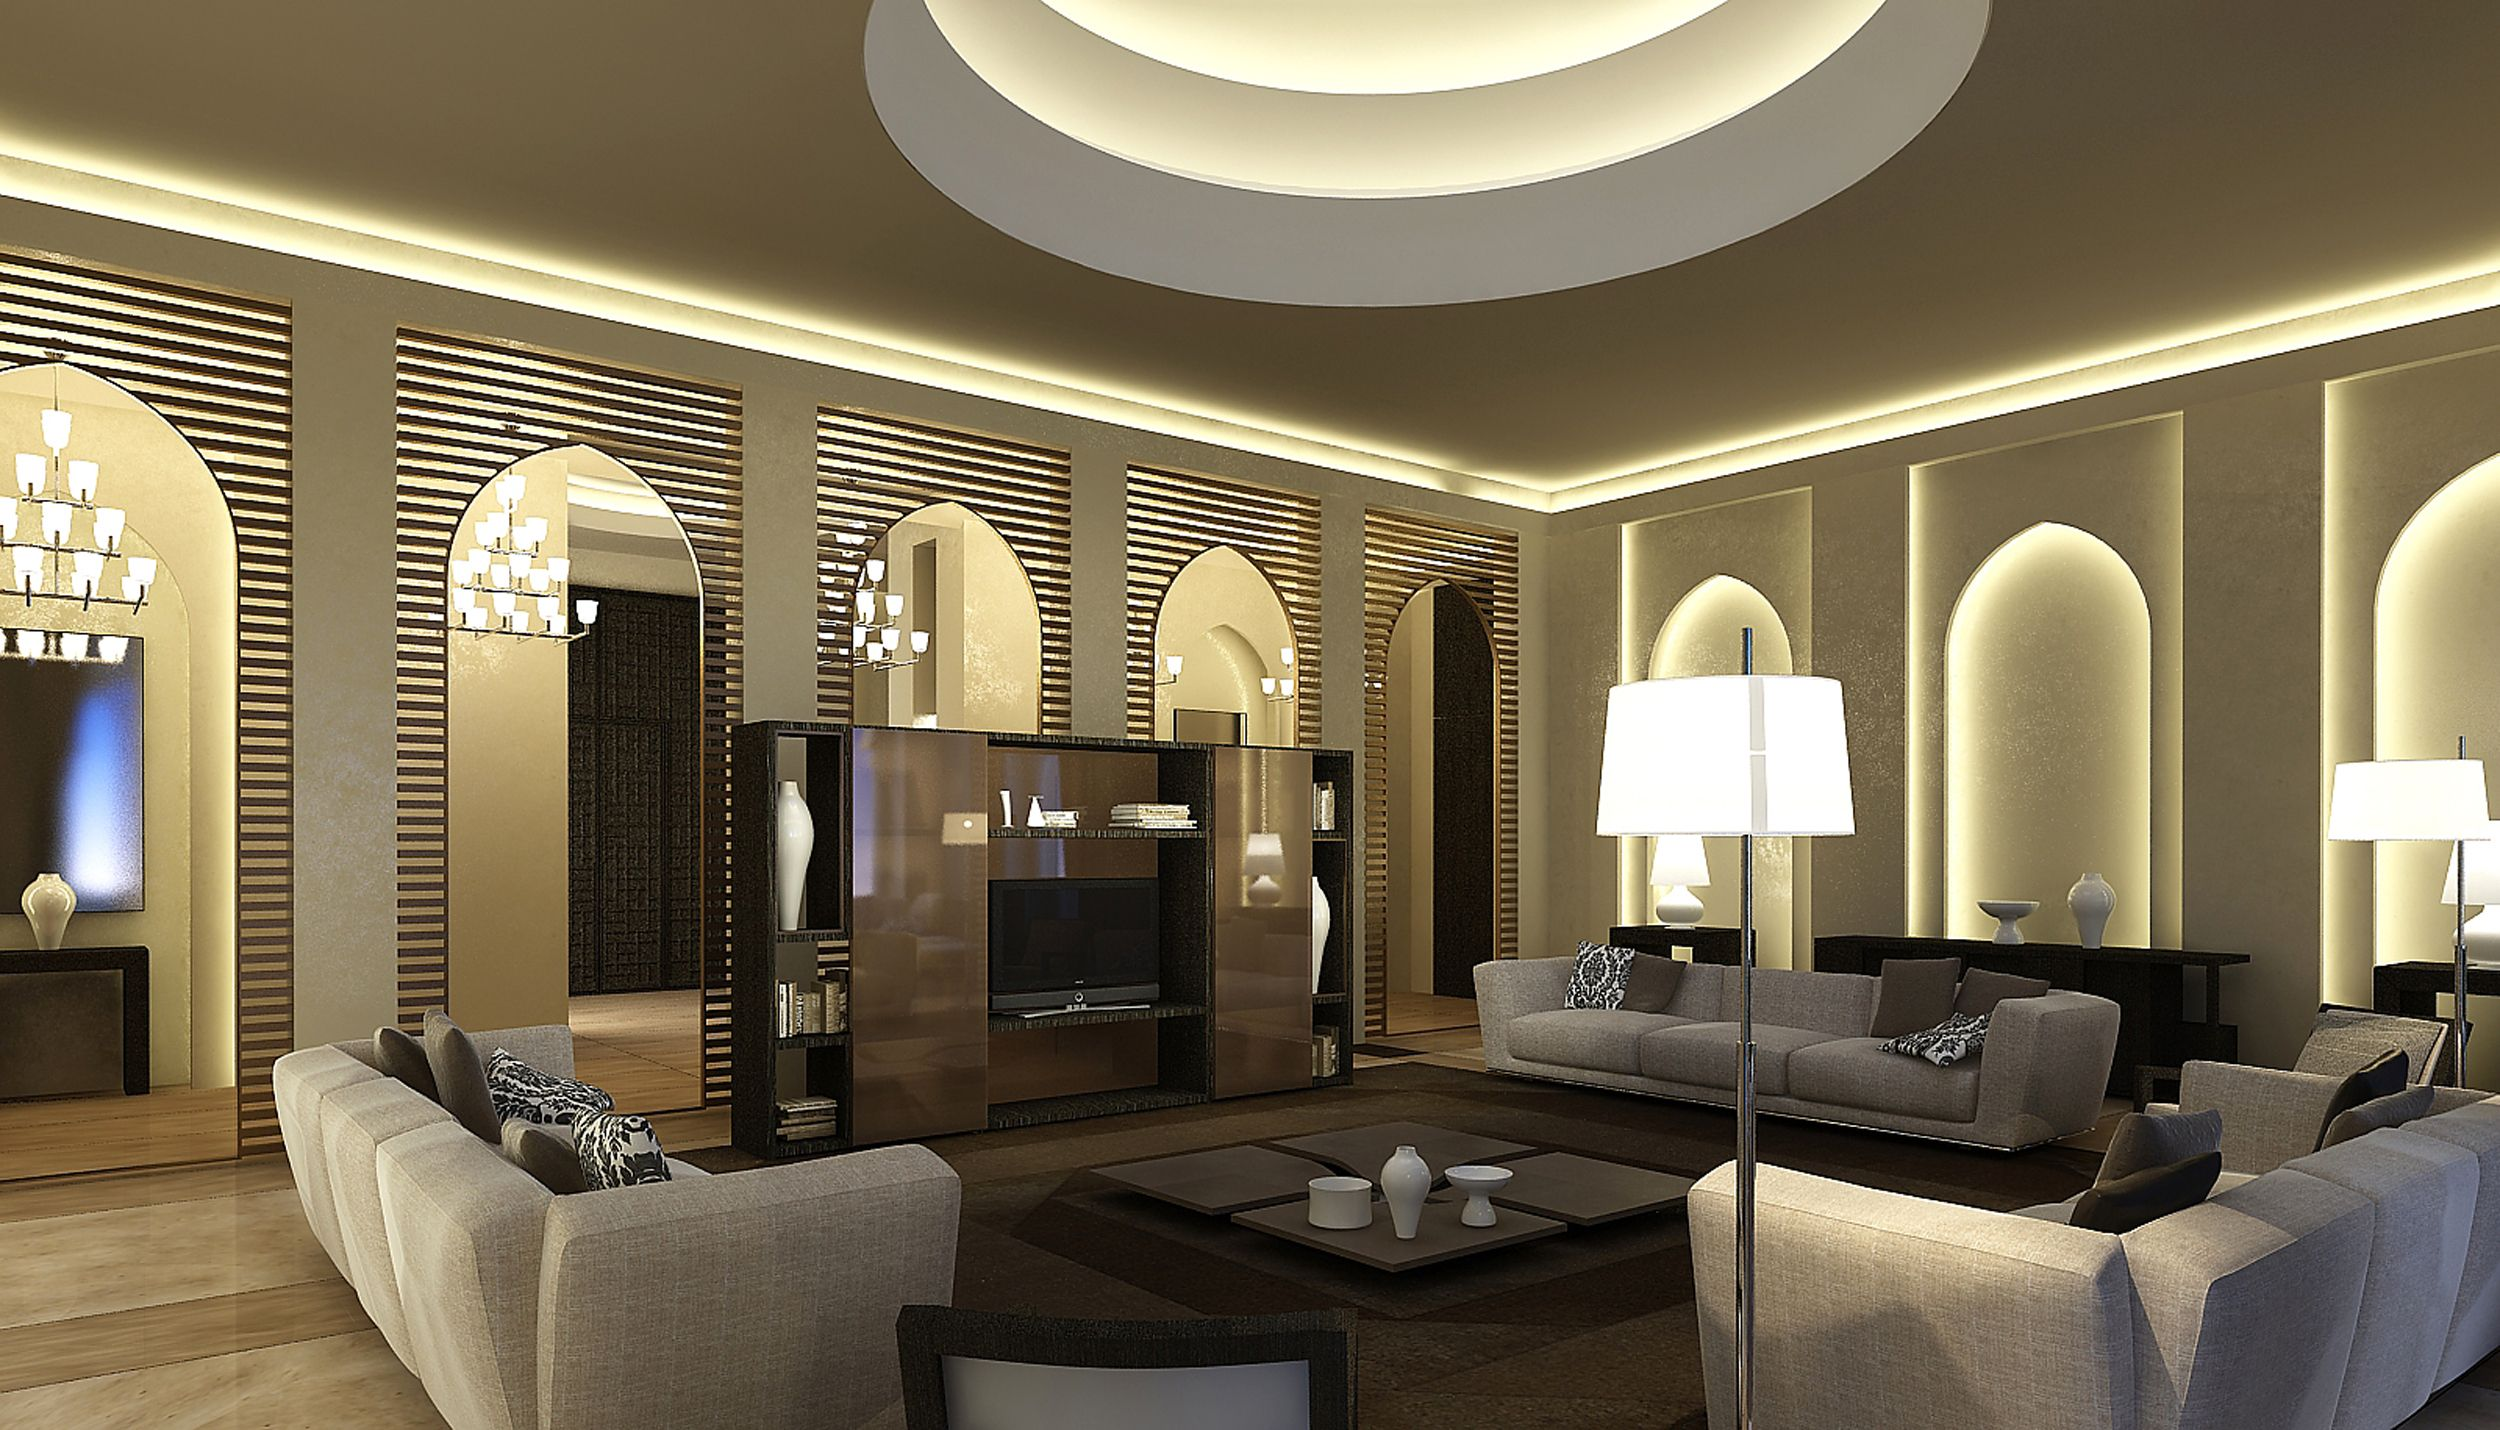 International interior design private villa abdul aziz al for Villa interior design pdf